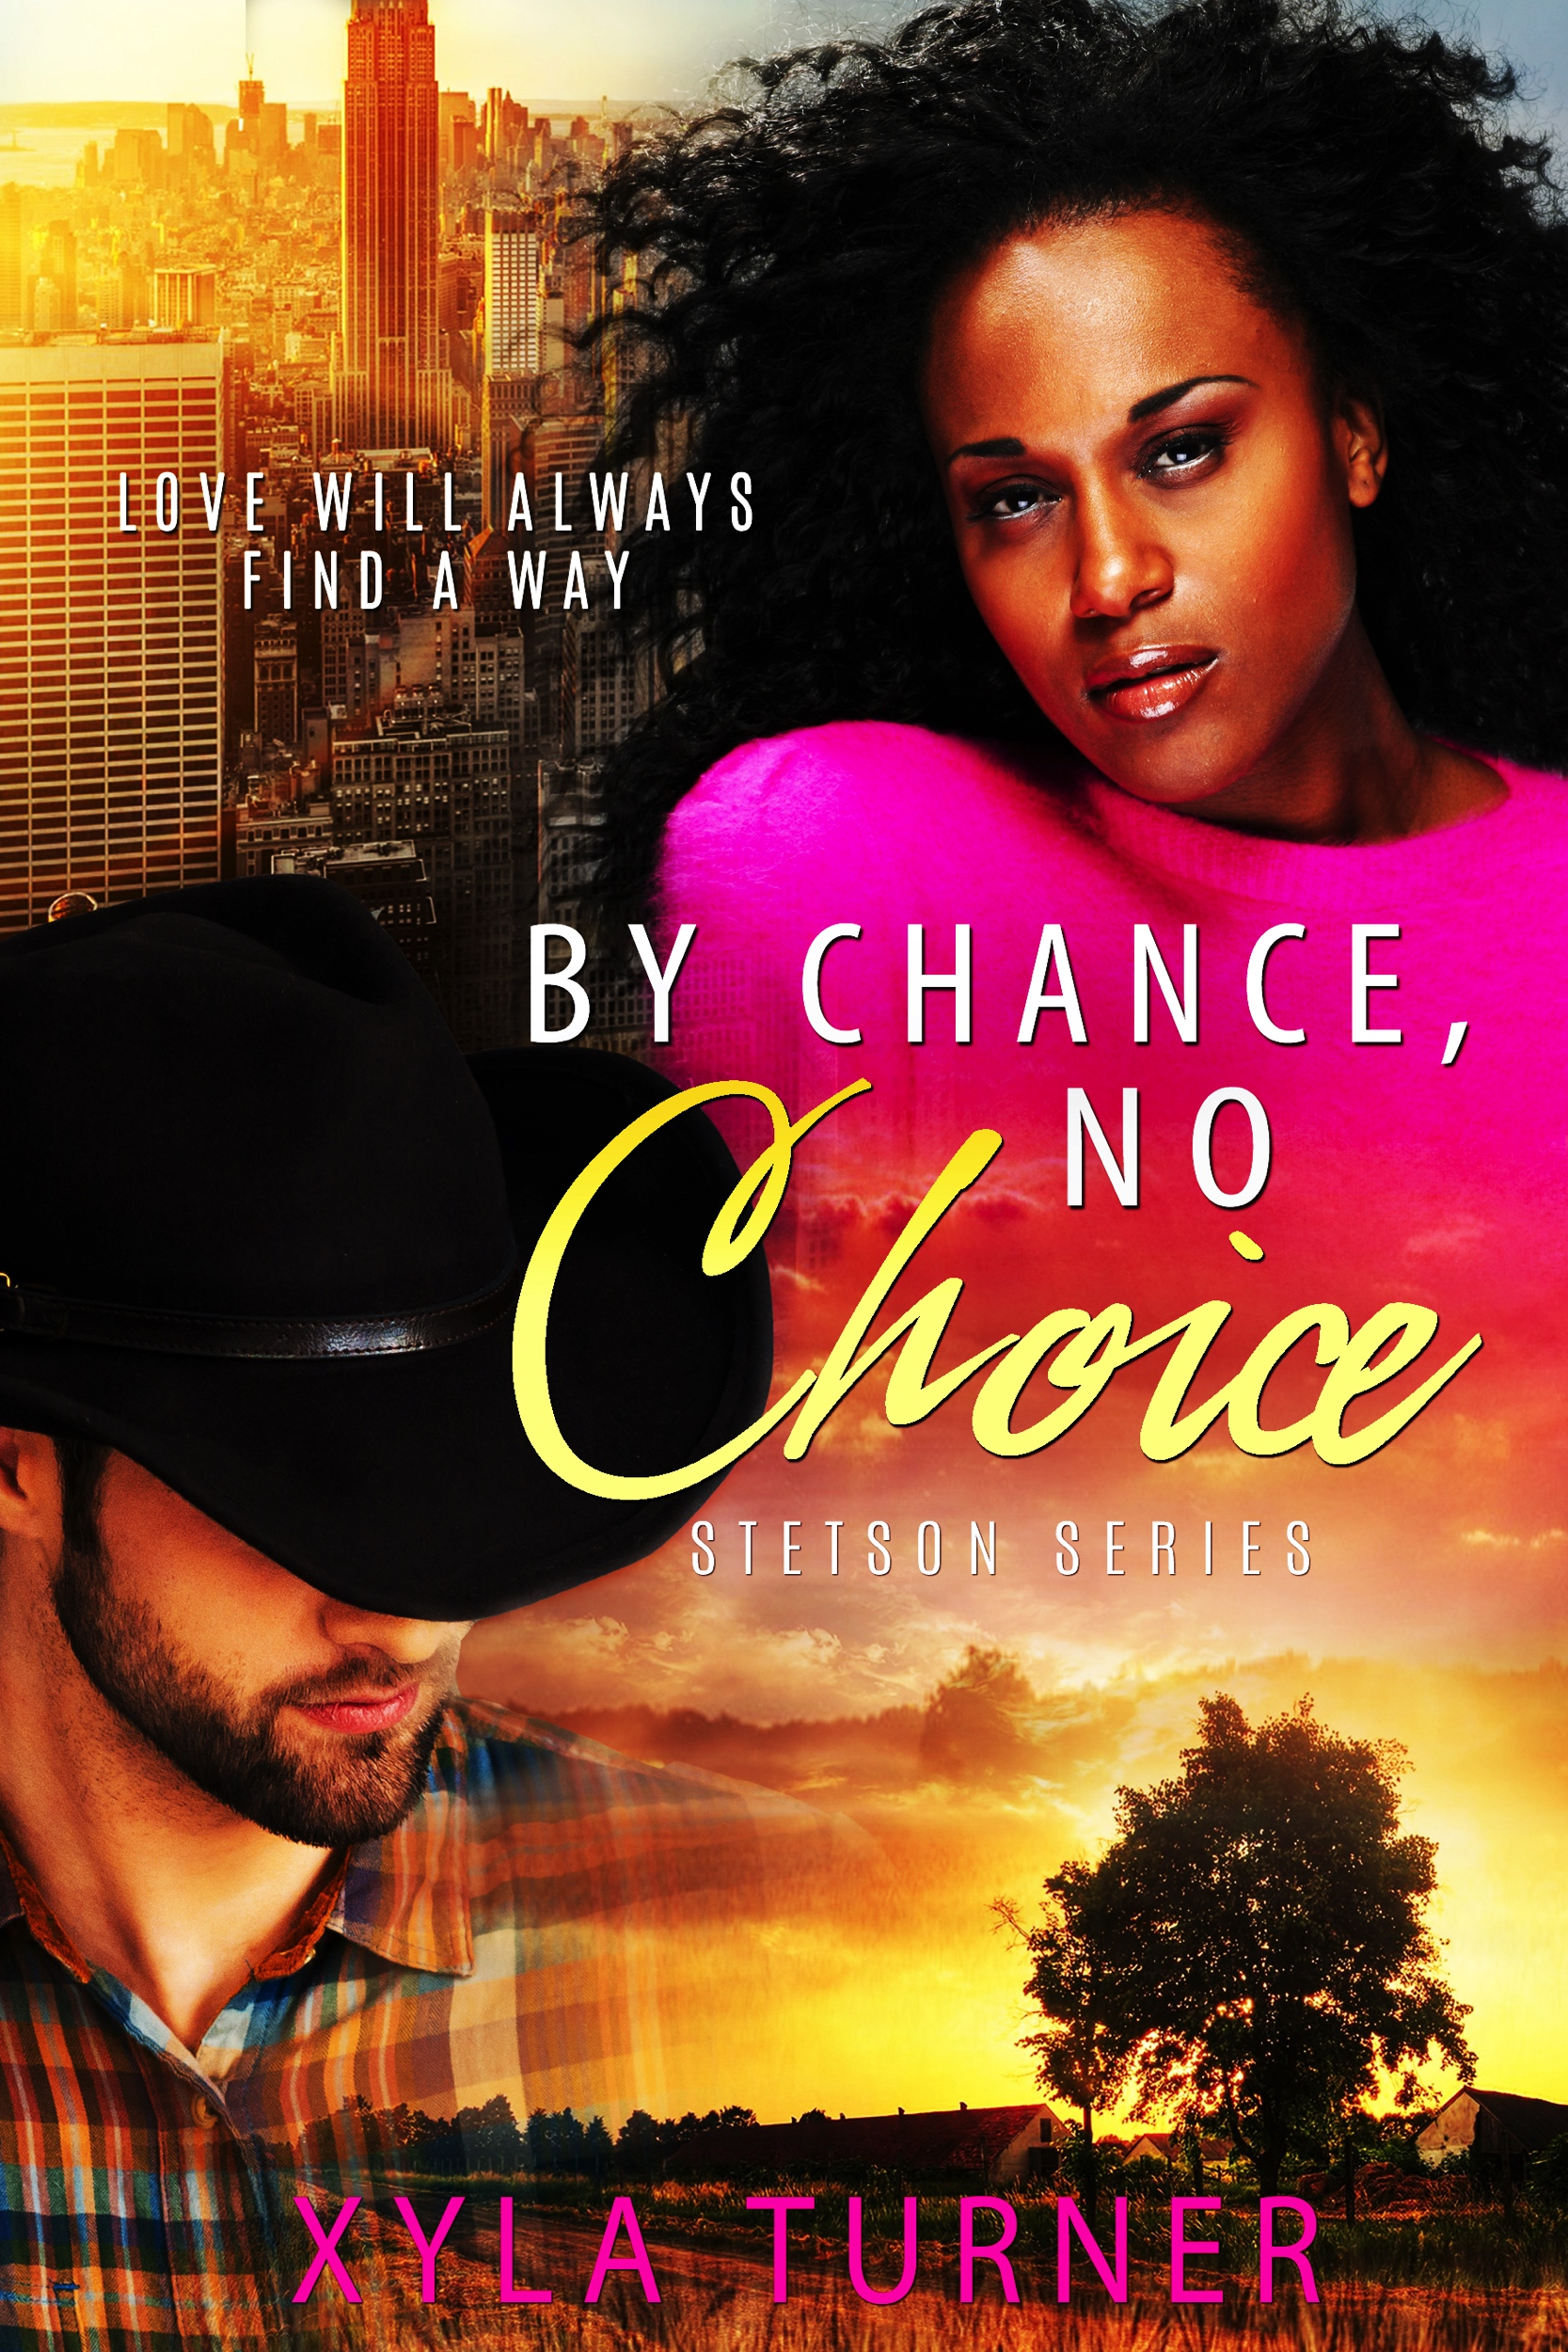 by-chance-no-choice